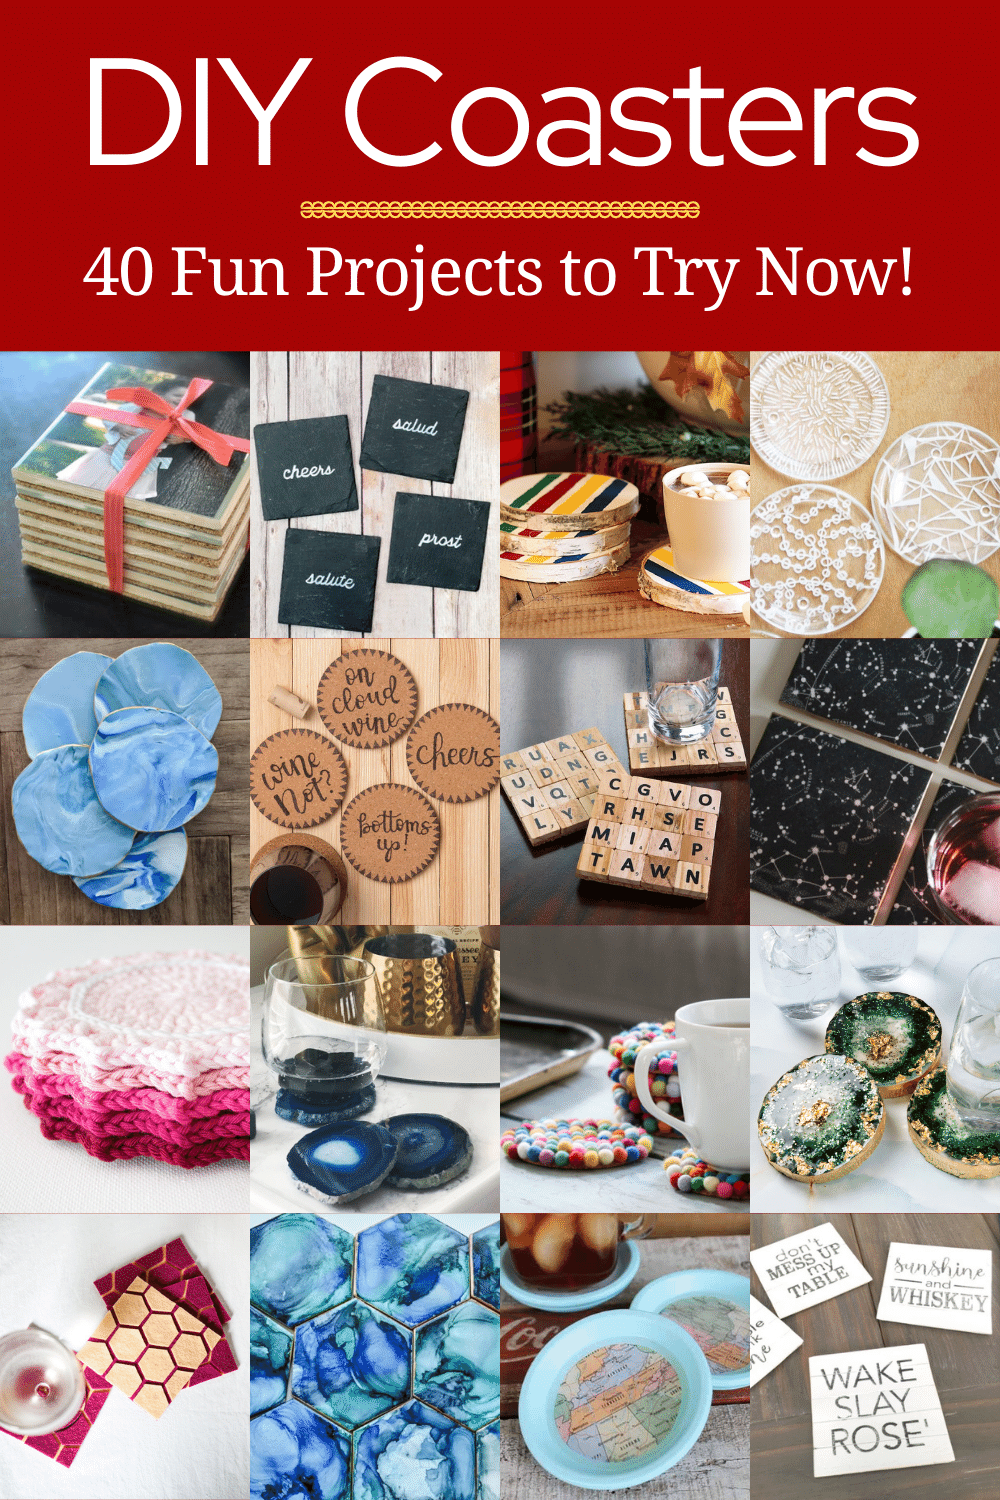 DIY Coasters: 40 fun projects to try